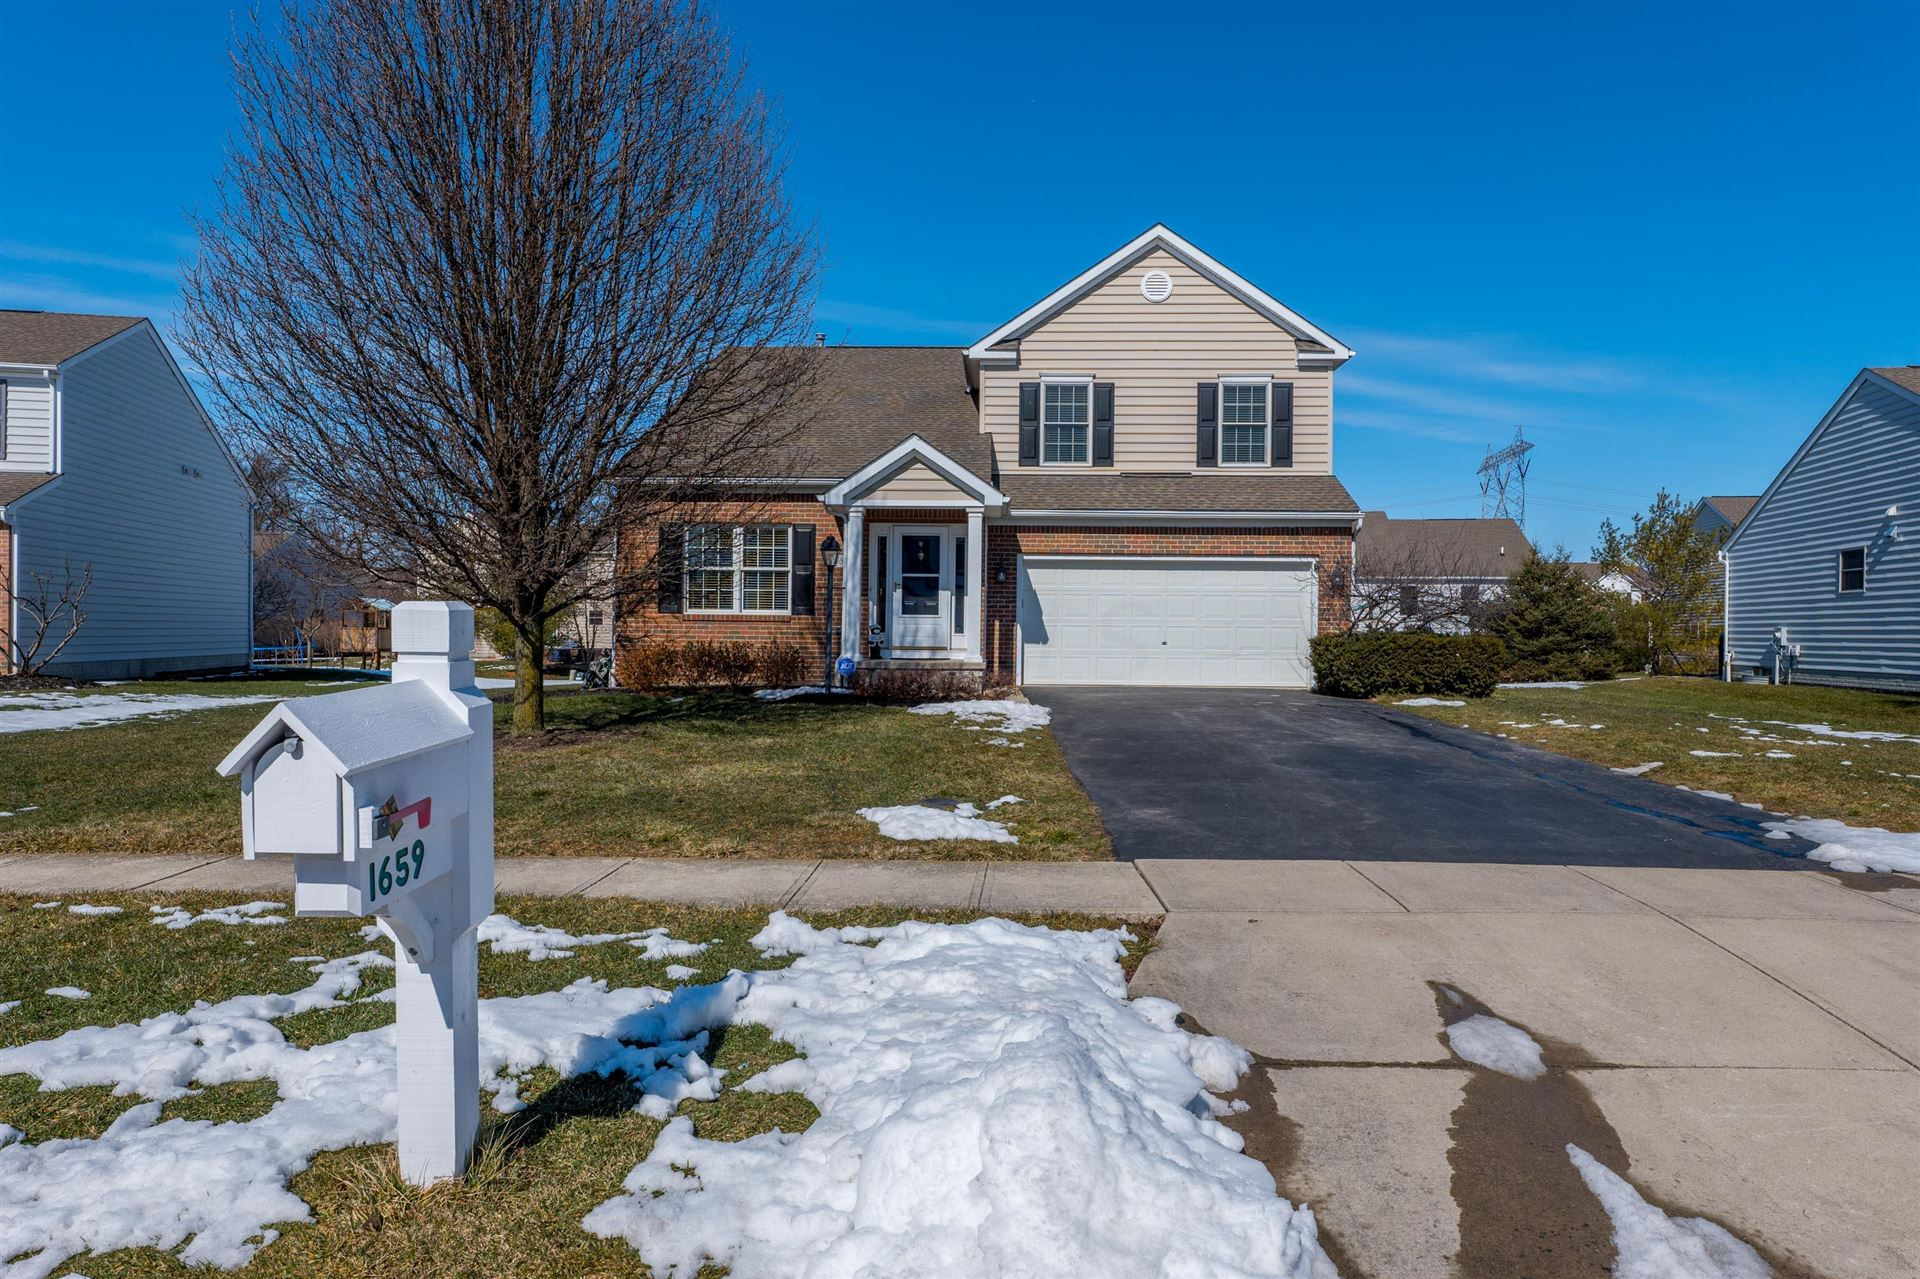 1659 Daffodil Place, Lewis Center, OH 43035 - MLS#: 221005891